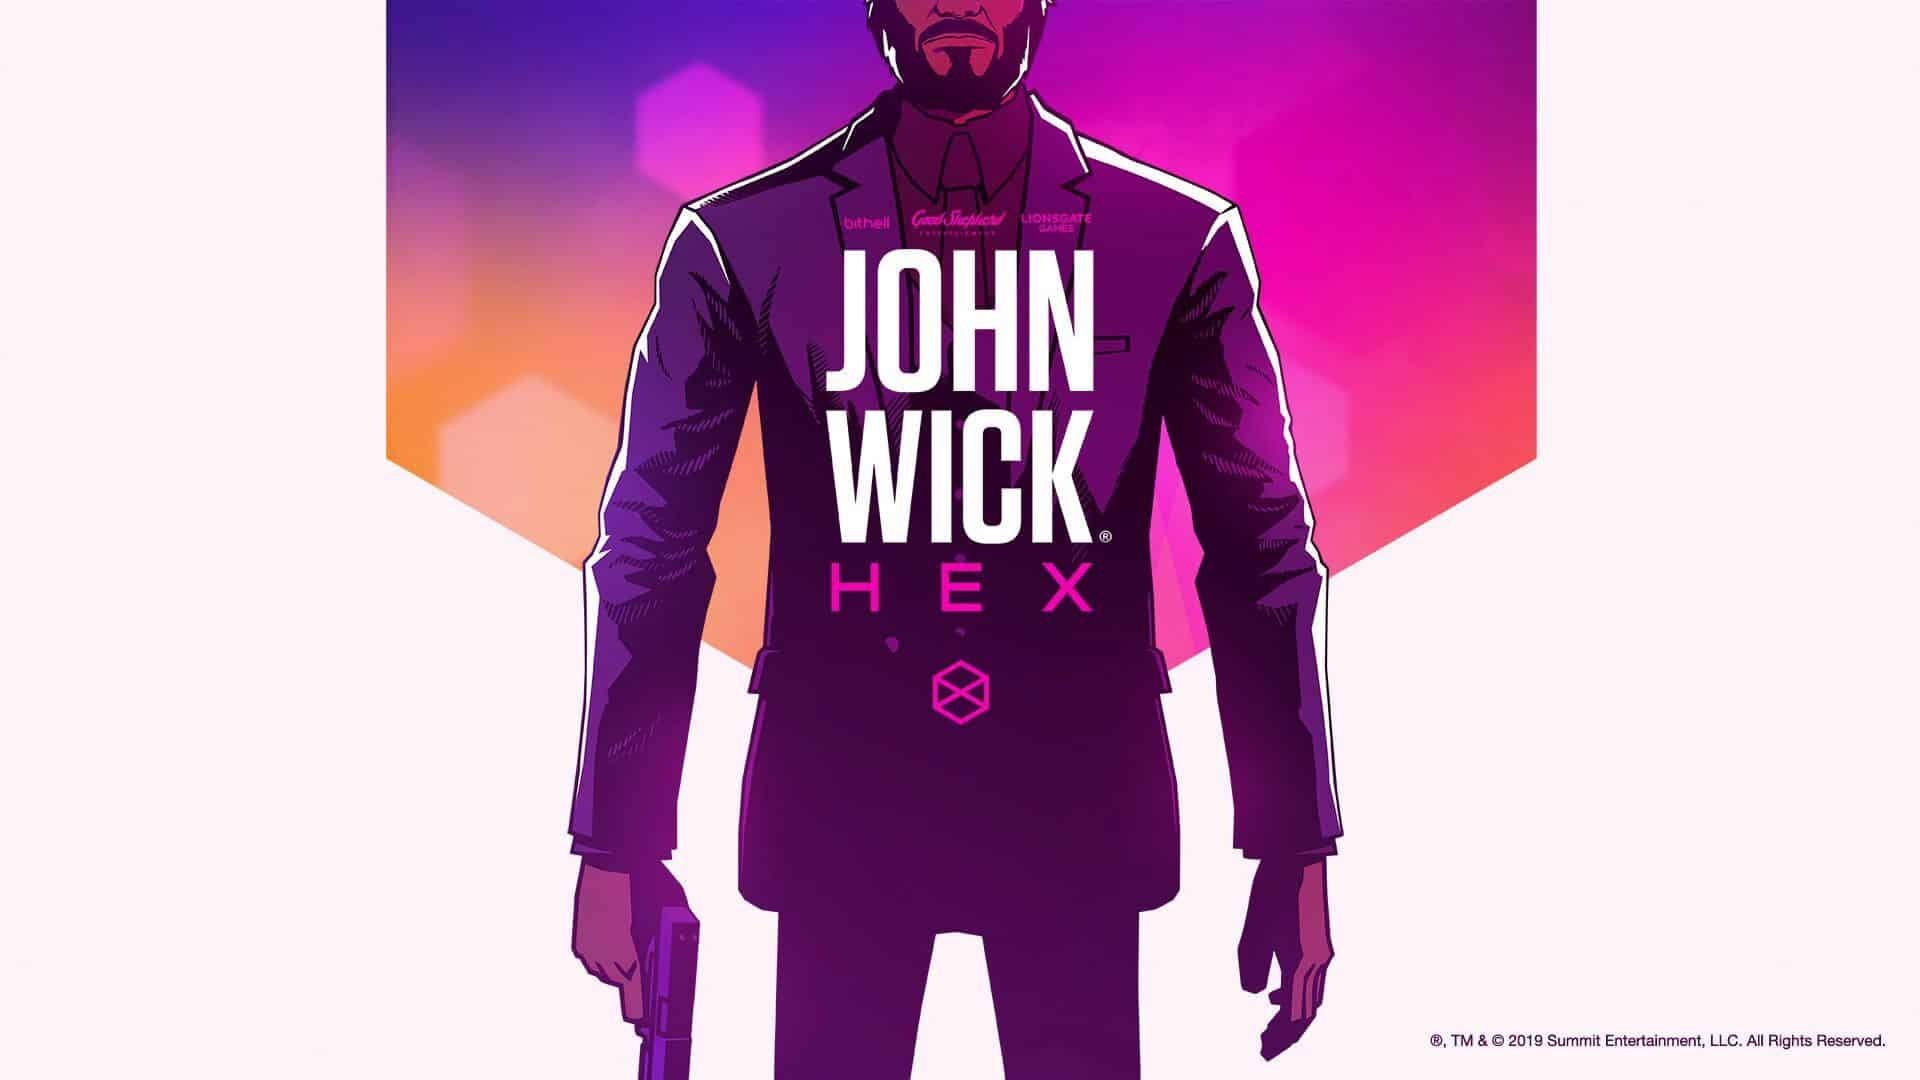 TRAILER: John Wick Hex Announced By Good Shepherd And Lionsgate